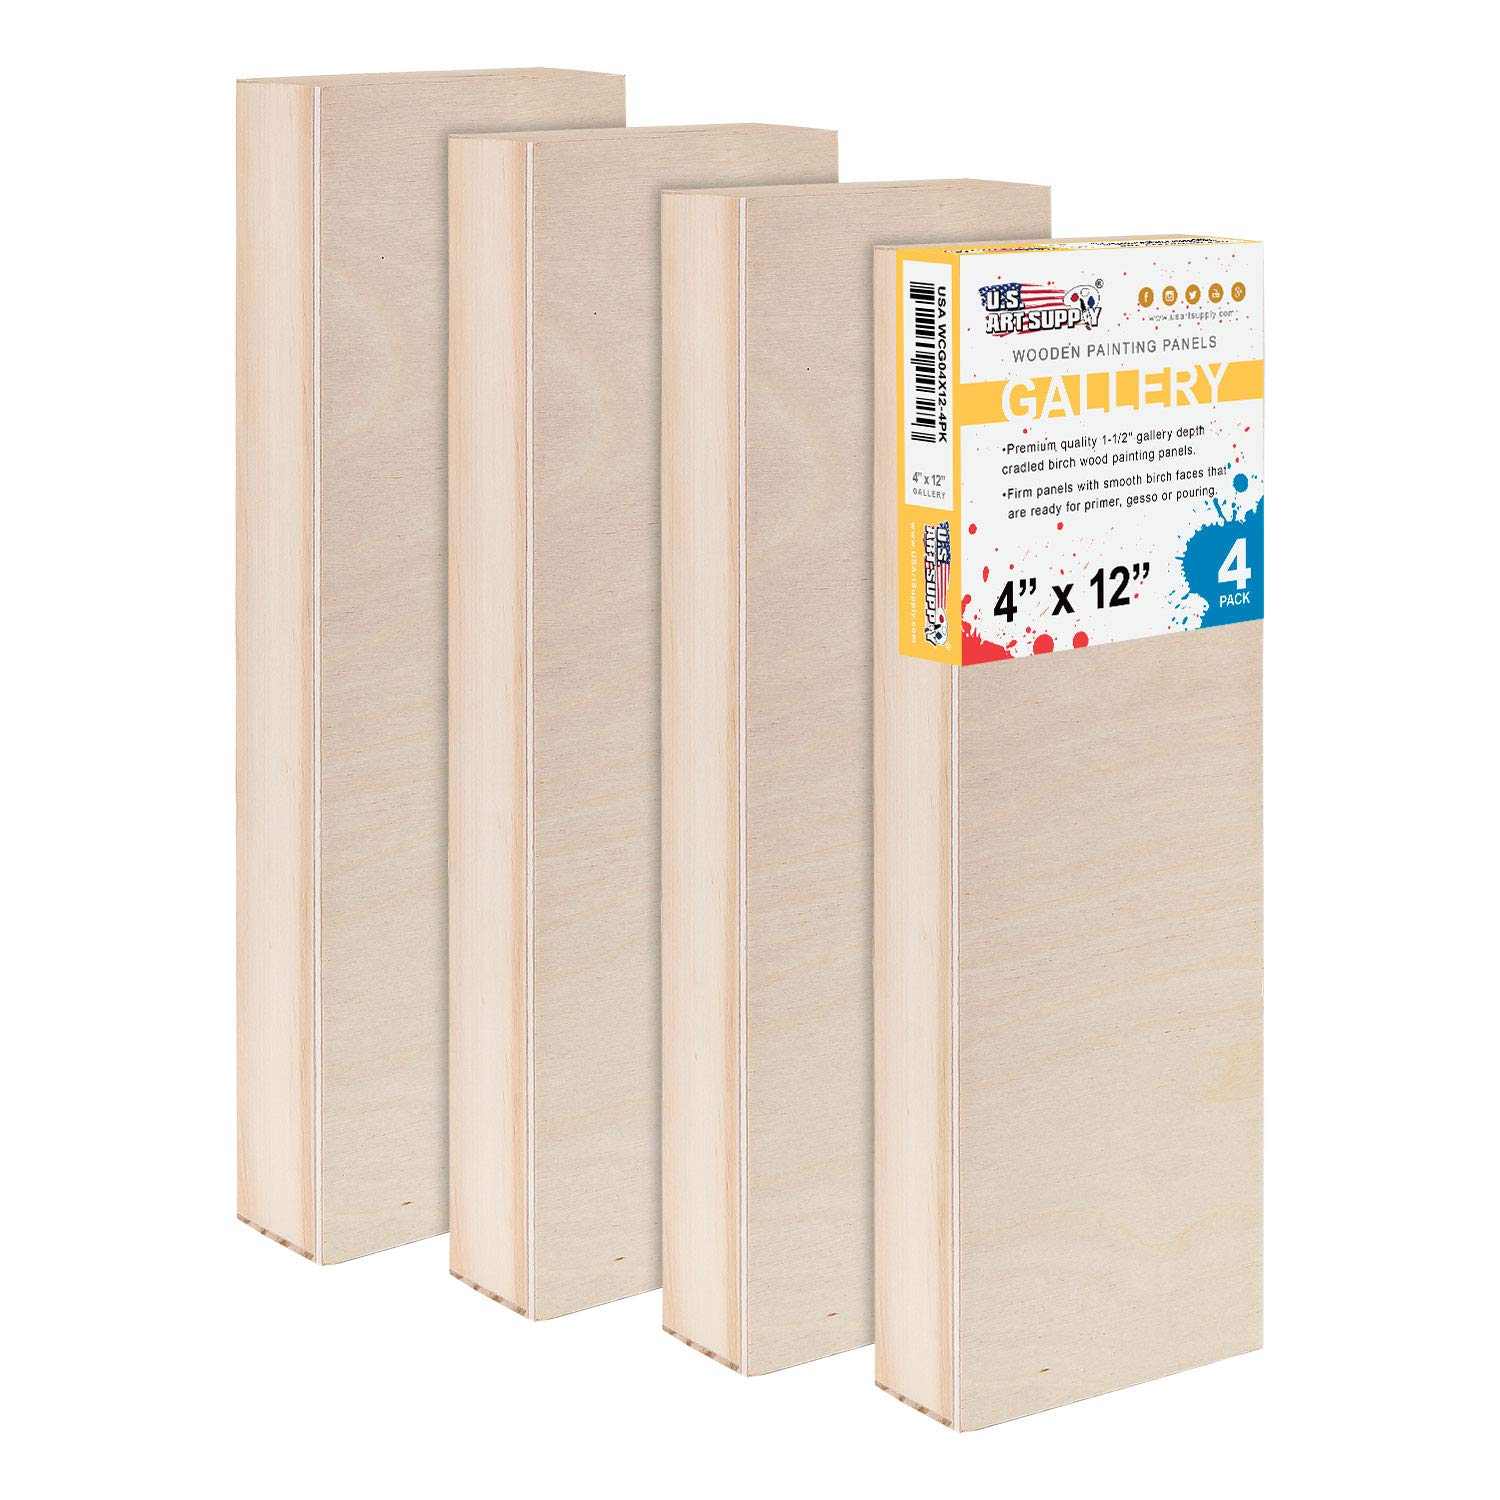 Art Supply 4 x 12 Birch Wood Paint Pouring Panel Boards Pack of 4 Oil U.S Painting Mixed-Media Craft - Artist Depth Wooden Wall Canvases Acrylic Encaustic Gallery 1-1//2 Deep Cradle